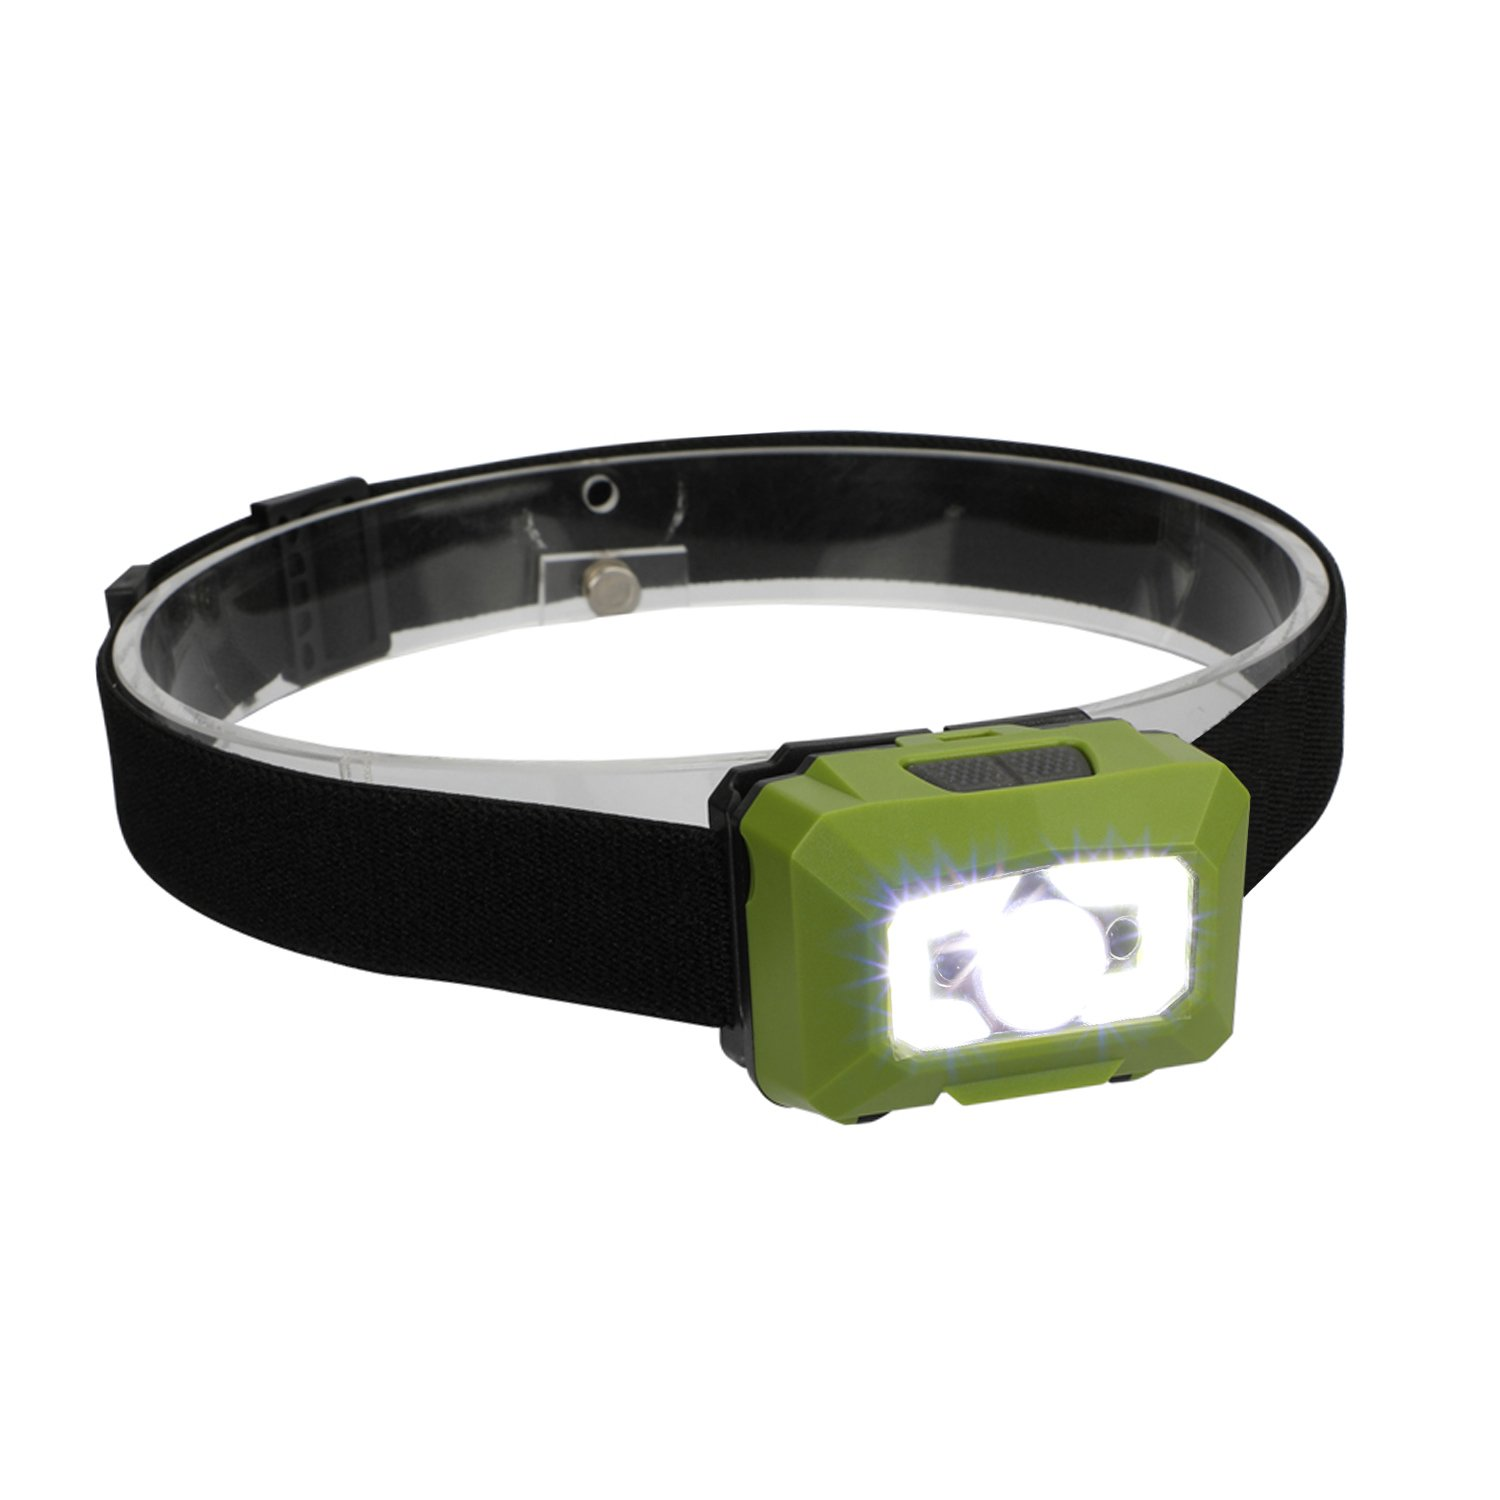 three trees Rechargeable Waterproof LED Camping Headlamp With Red Light,Head Torchlight Sensor Brightest Flashlight for Kids, Men, Women.Waterproof for Running, Walking,Reading,Camping (green)